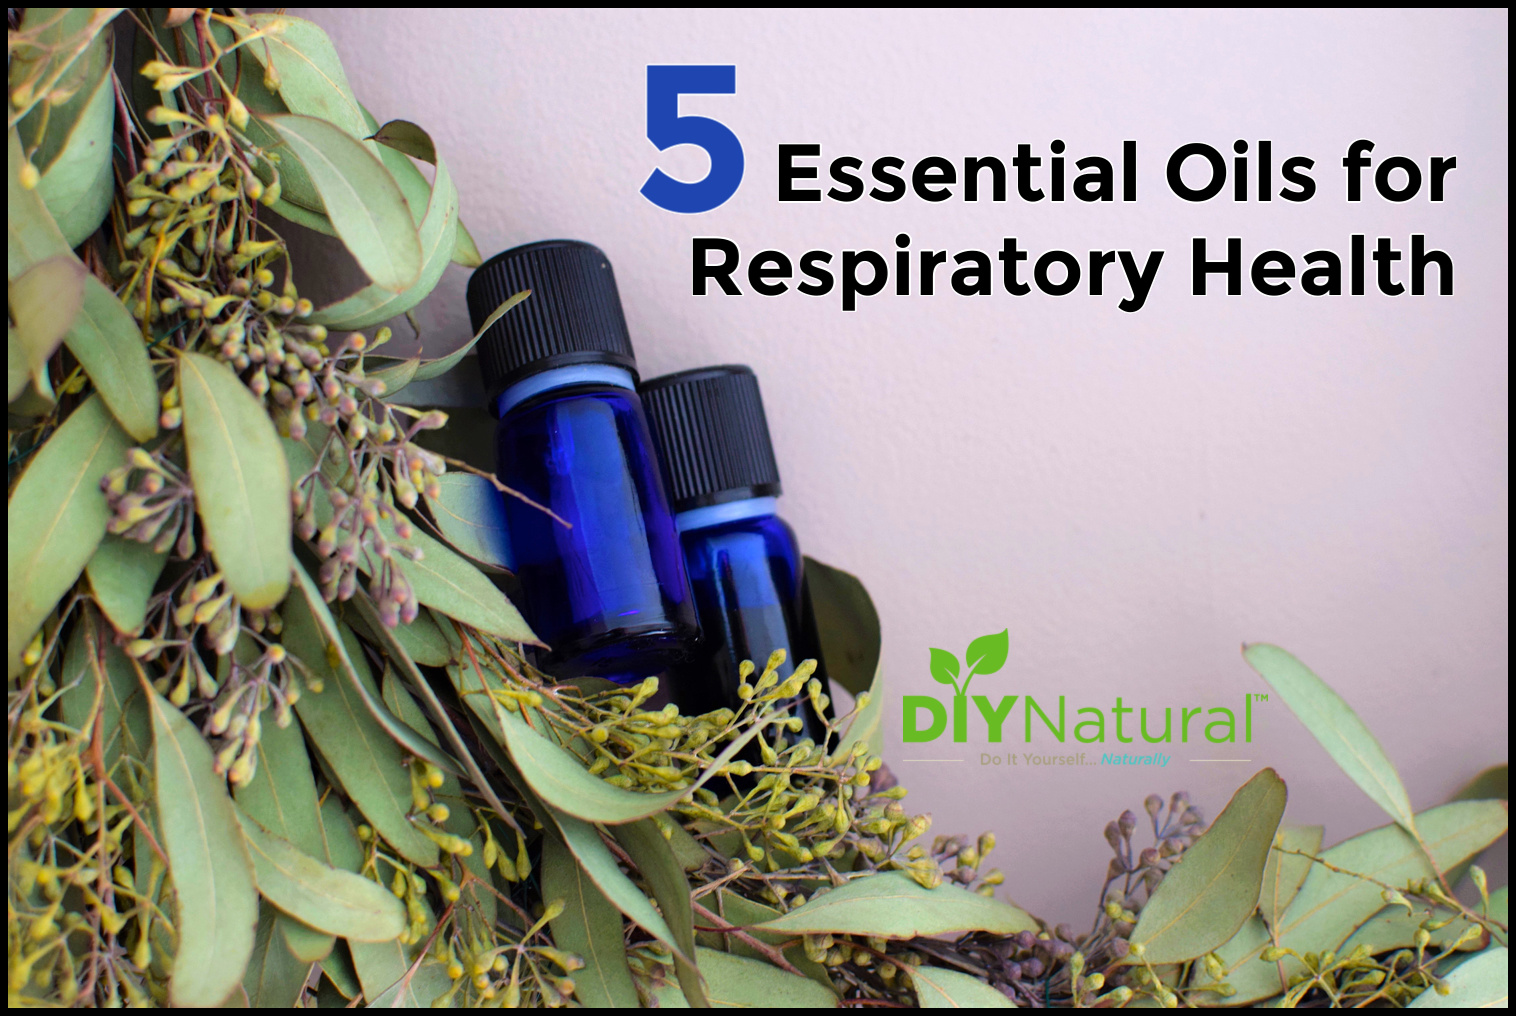 List of 5 Essential Oils to Support Respiratory Health